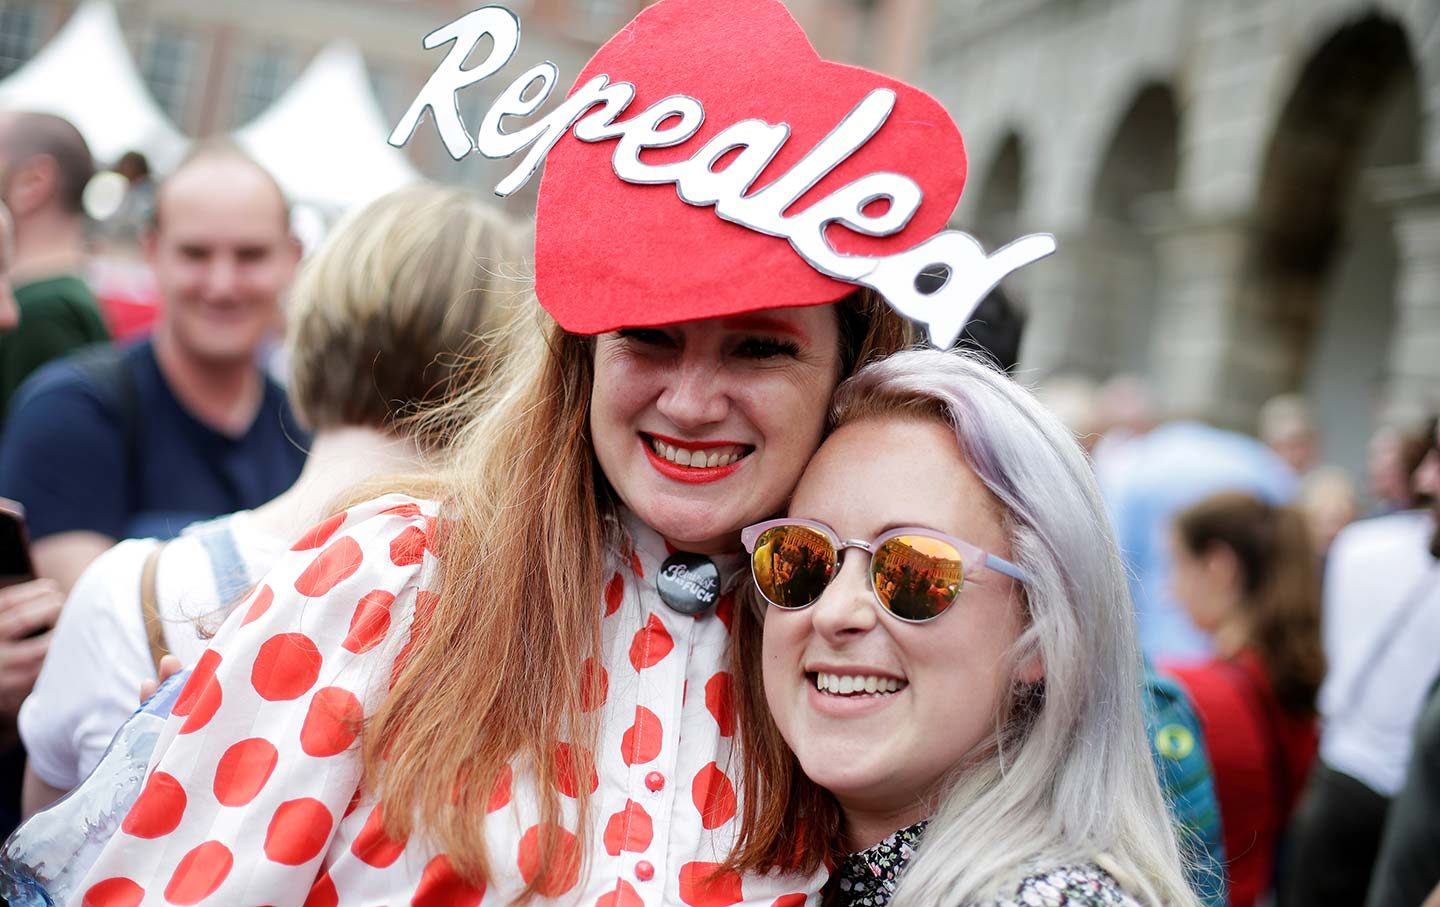 Ireland Abortion Love